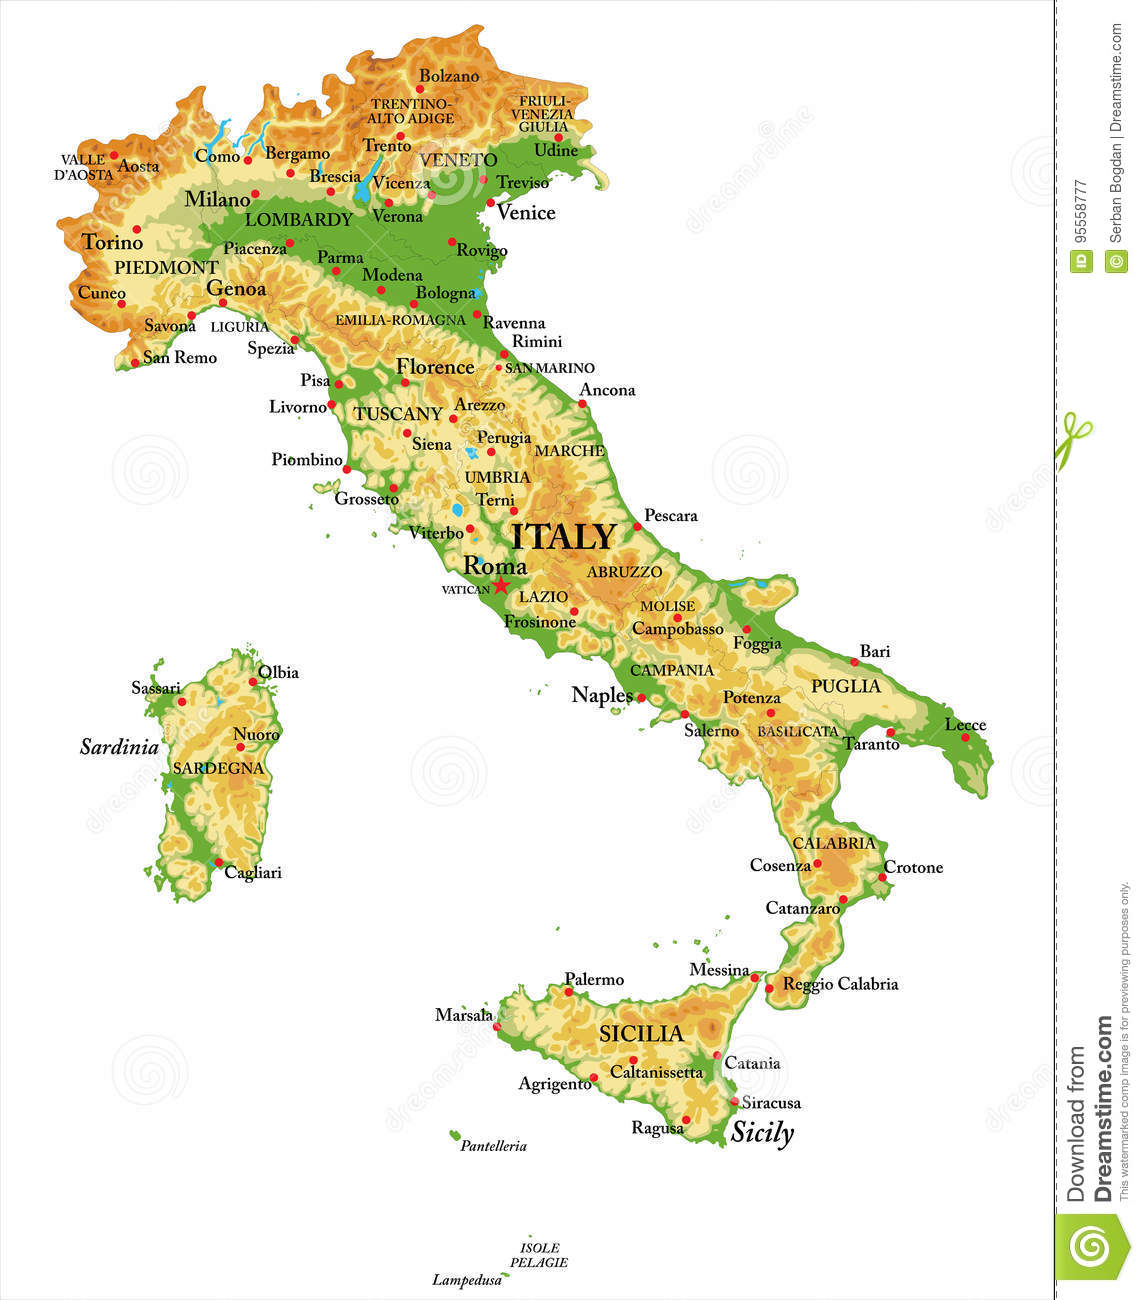 Images Physical Map Of Italy on san marino italy, capital of italy, prato italy, landmarks of italy, ancona italy, mezzogiorno italy, lake garda italy, animals of italy, absolute location of italy, lakes of italy, printable map italy, rivers of italy, turin italy, physical map portugal, northern italy, geography of italy, culture of italy, people of italy, cities in italy, elevation in italy,